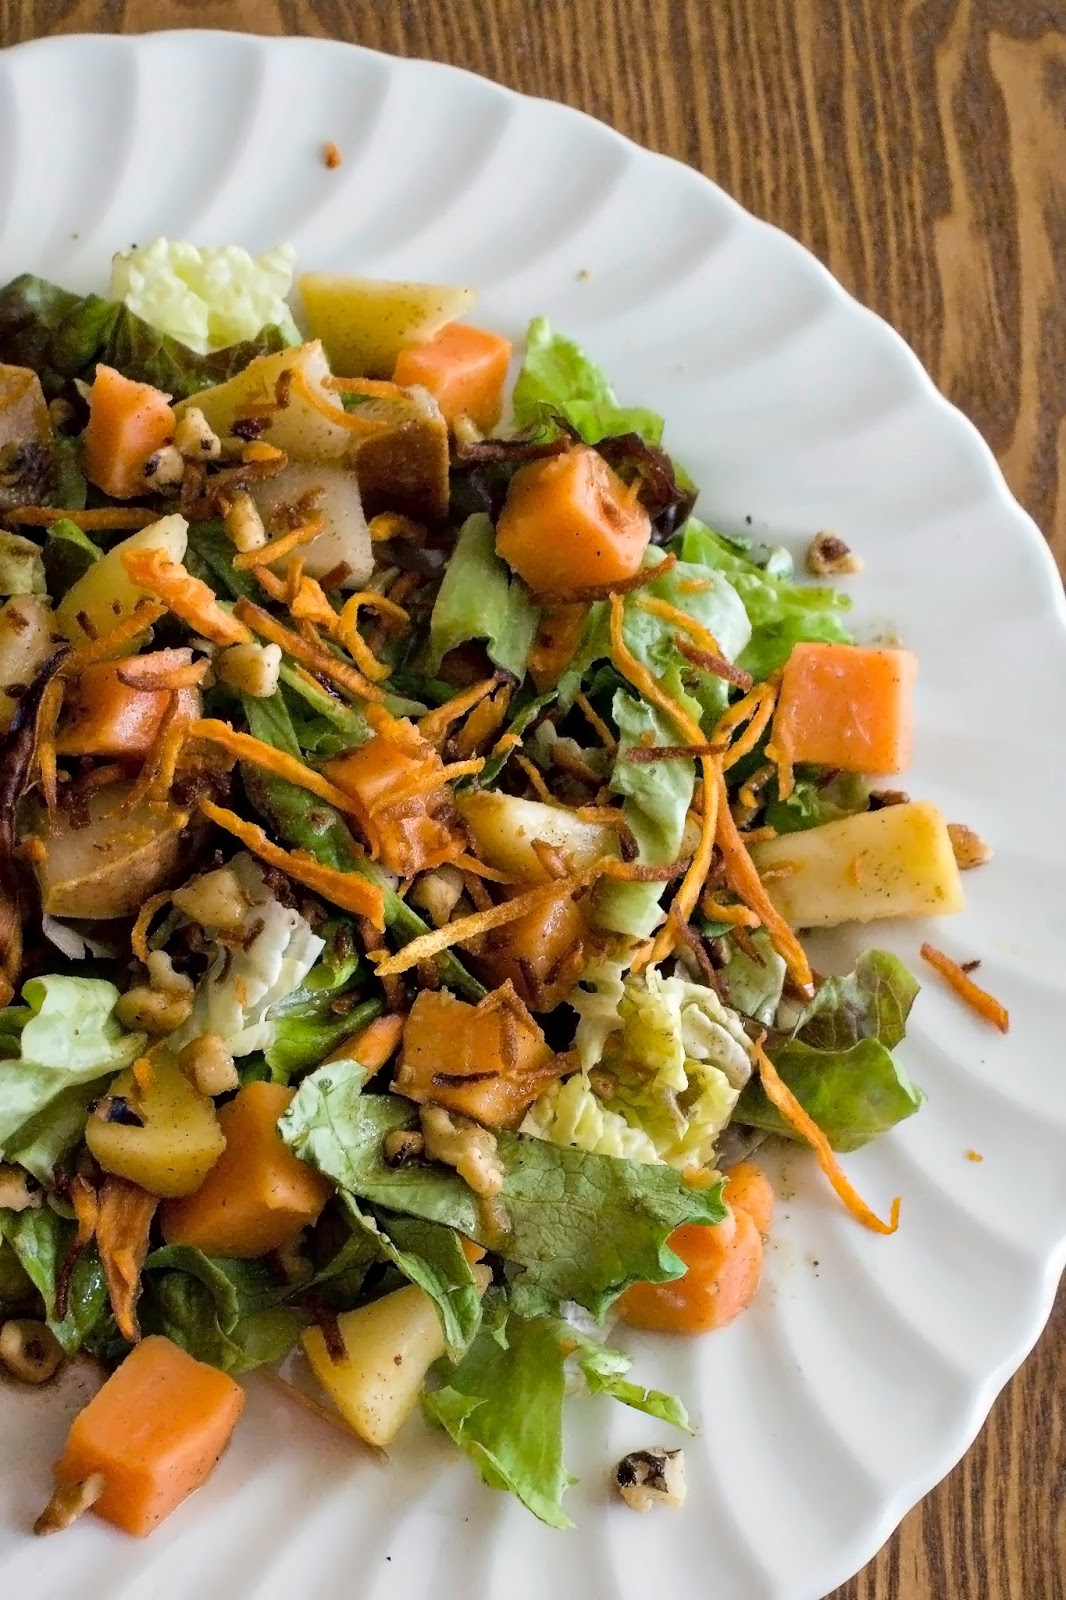 Sweet Potato-Pear Salad with Walnuts and Potato Crisps